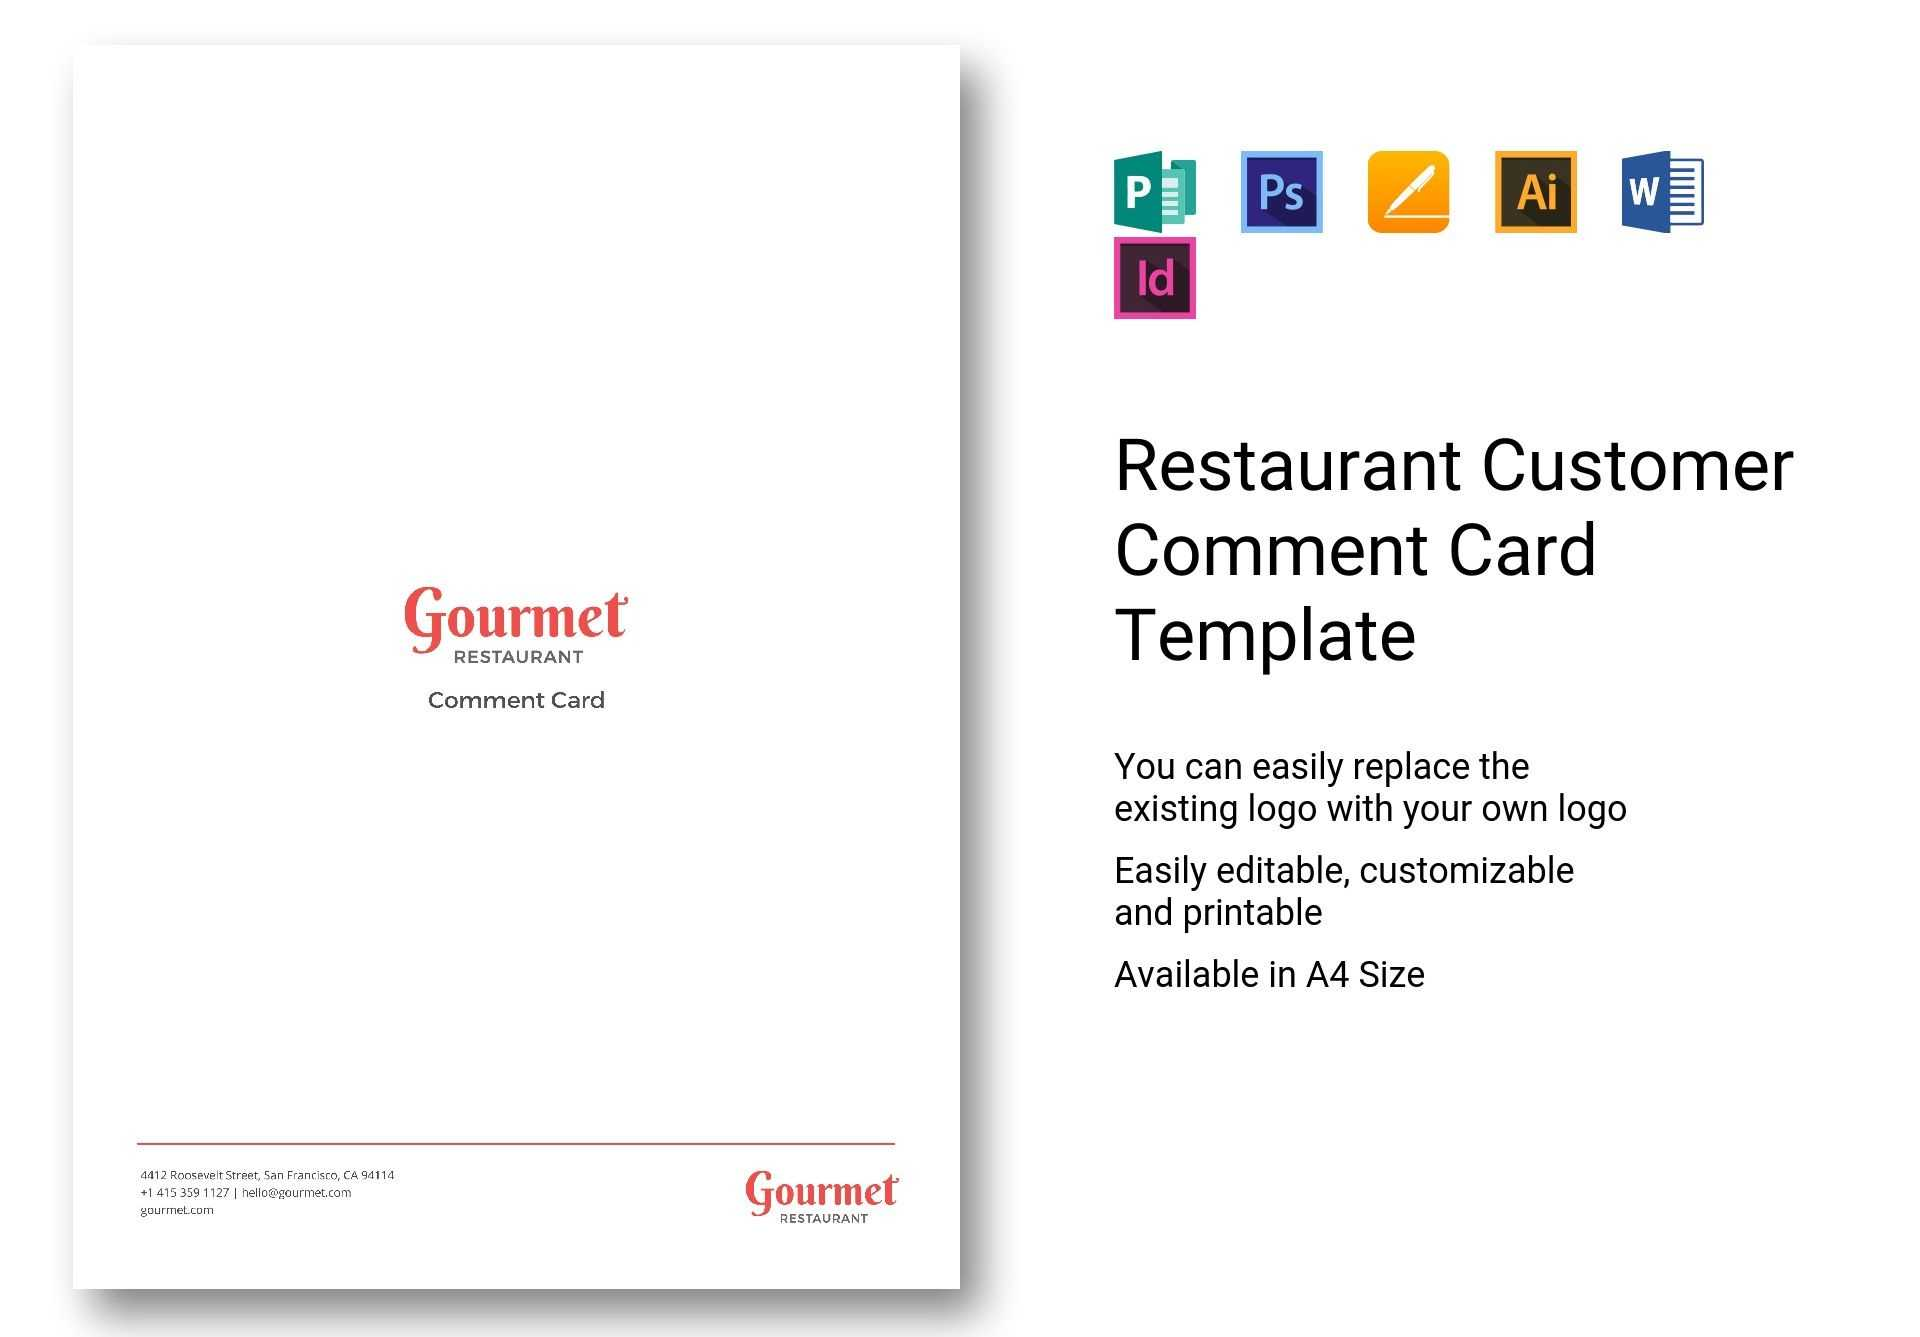 Restaurant Customer Comment Card Template In Psd, Word inside Restaurant Comment Card Template